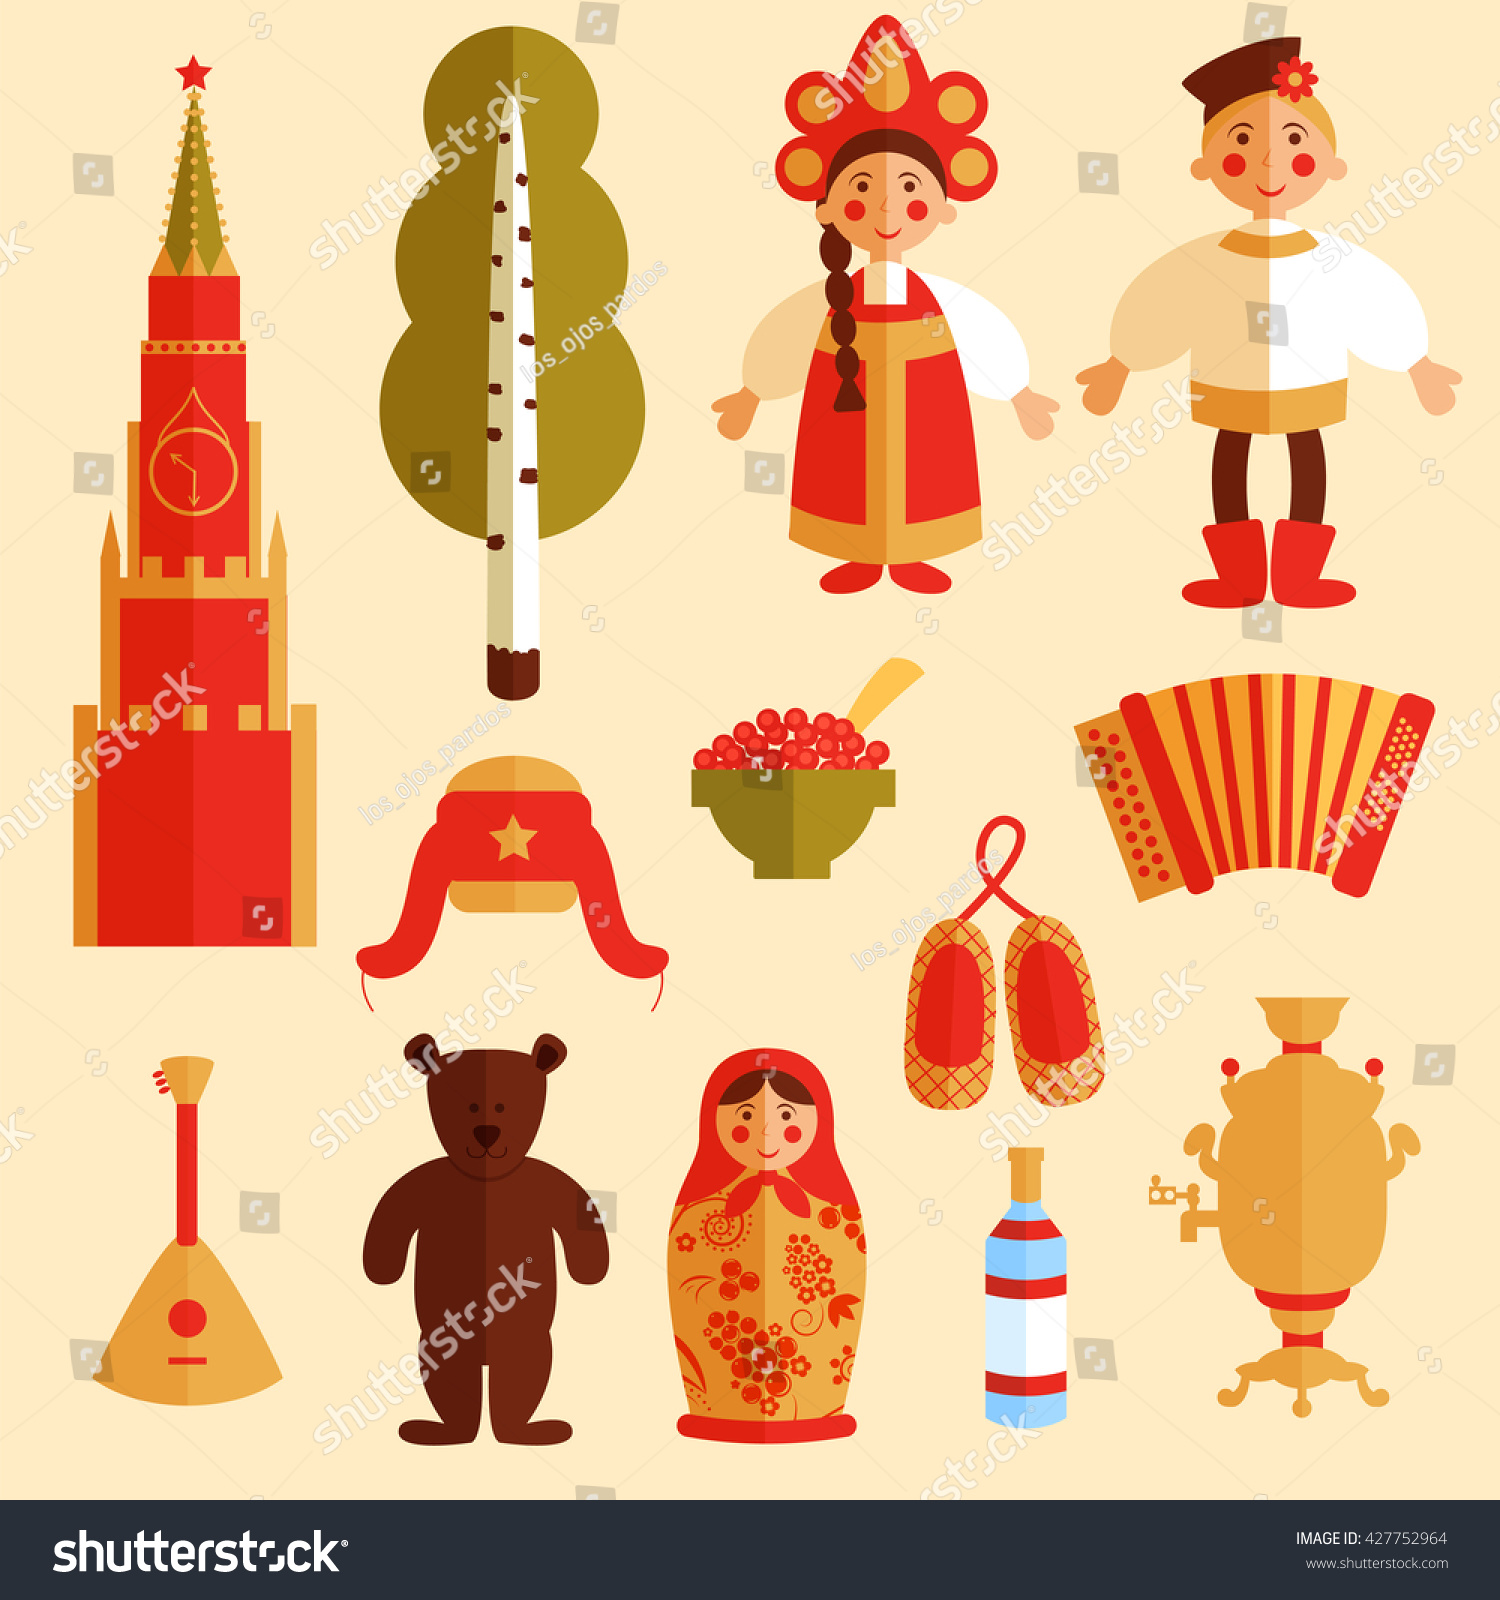 vector set russian icons traditional cultural stock vector vector set of russian icons traditional cultural symbols